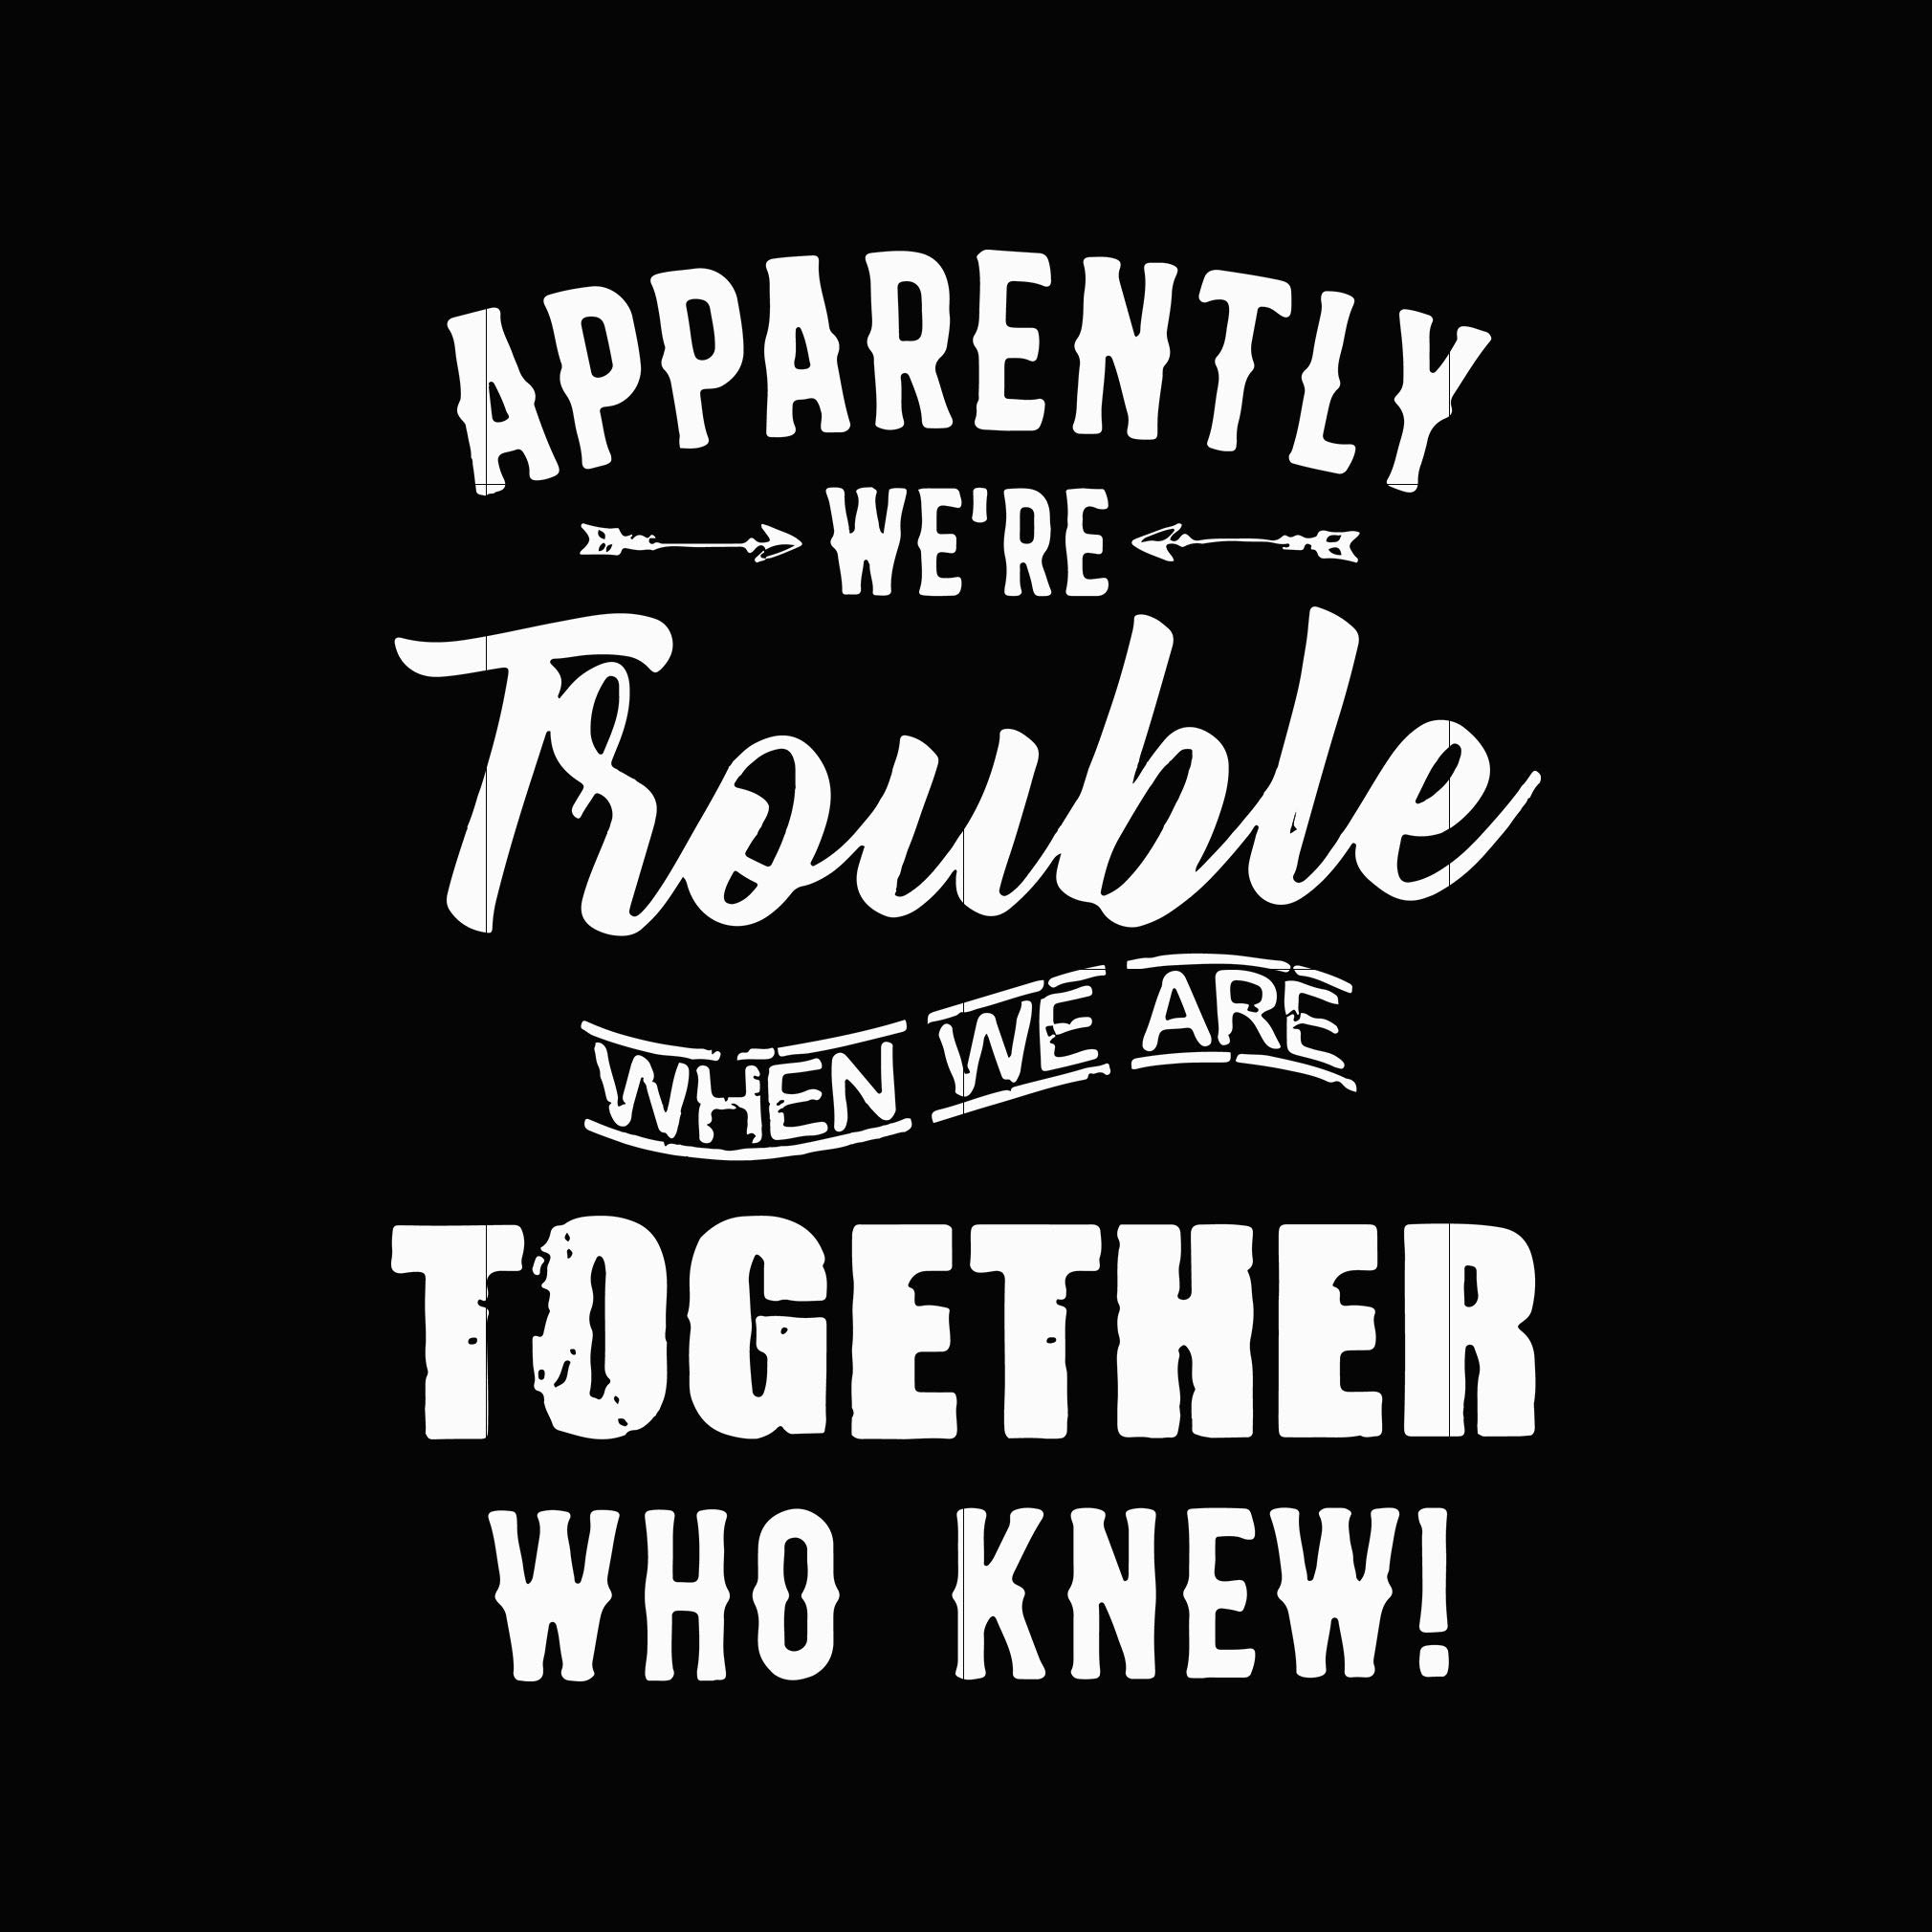 Apparently we're trouble when we are together who knew svg,dxf,eps,png digital file